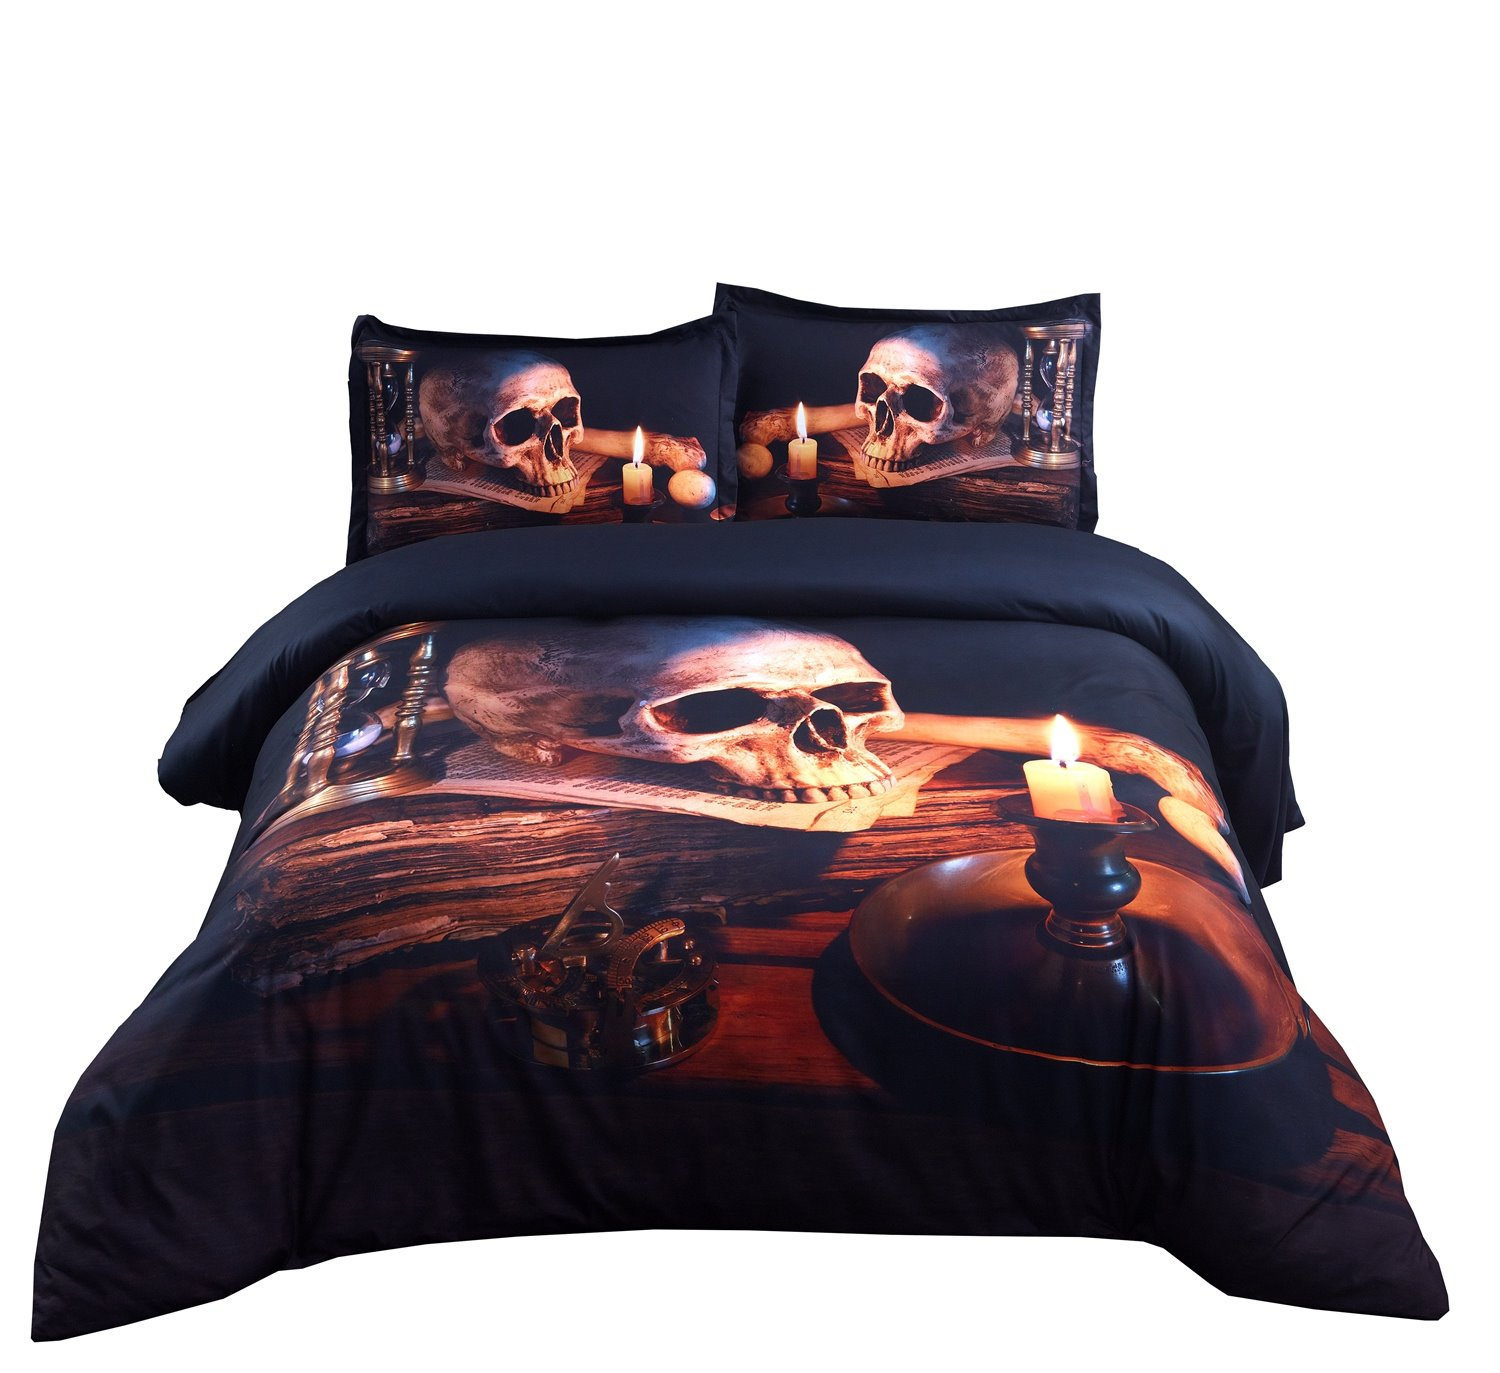 3D Skull and Candle Printed 5-Piece Halloween Comforter Sets